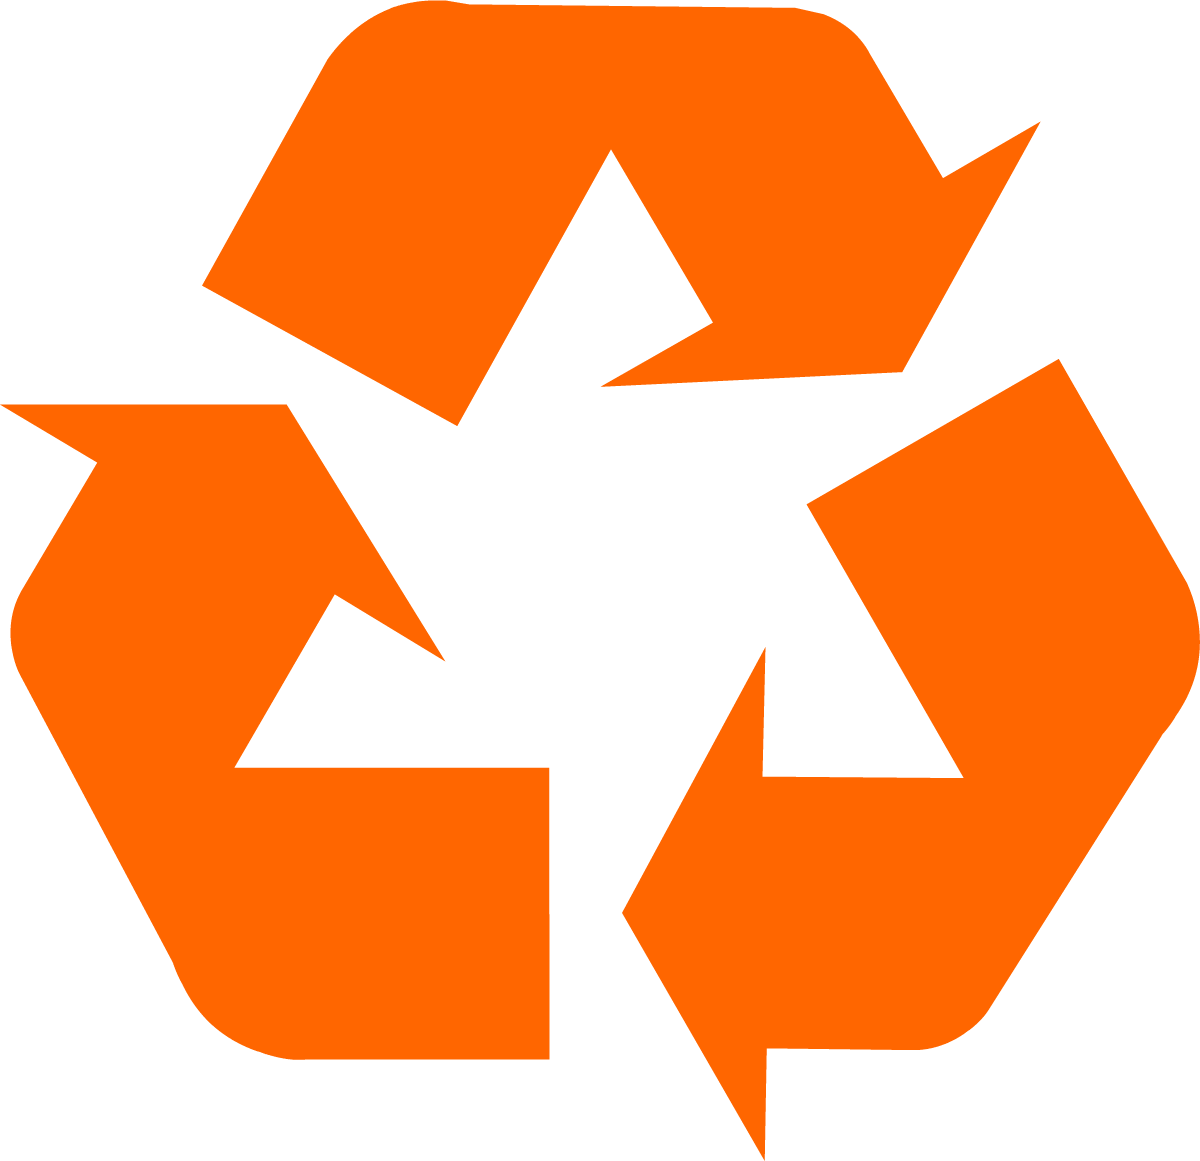 Download Recycling Symbol The Original Recycle Logo Recycle Symbol Symbols Recycle Logo